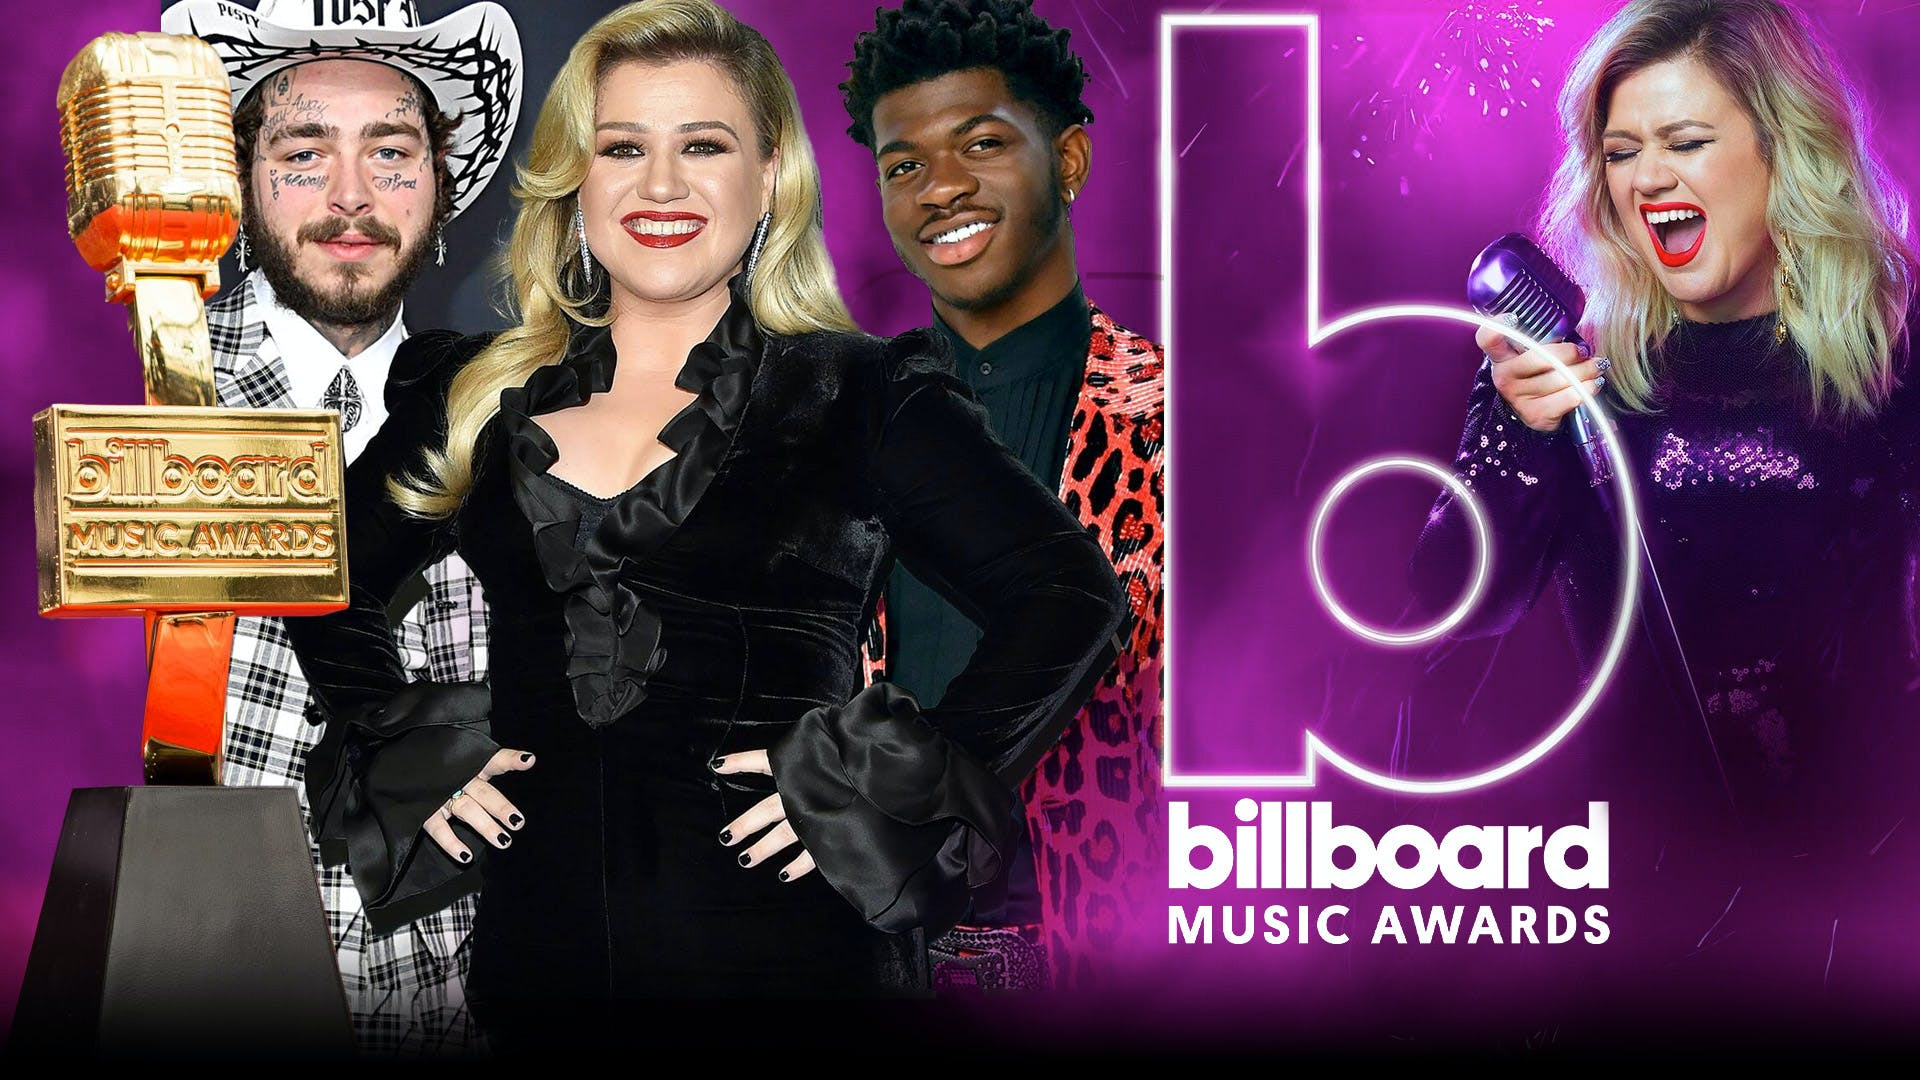 Billboard Music Awards 2020: Here's Who Won